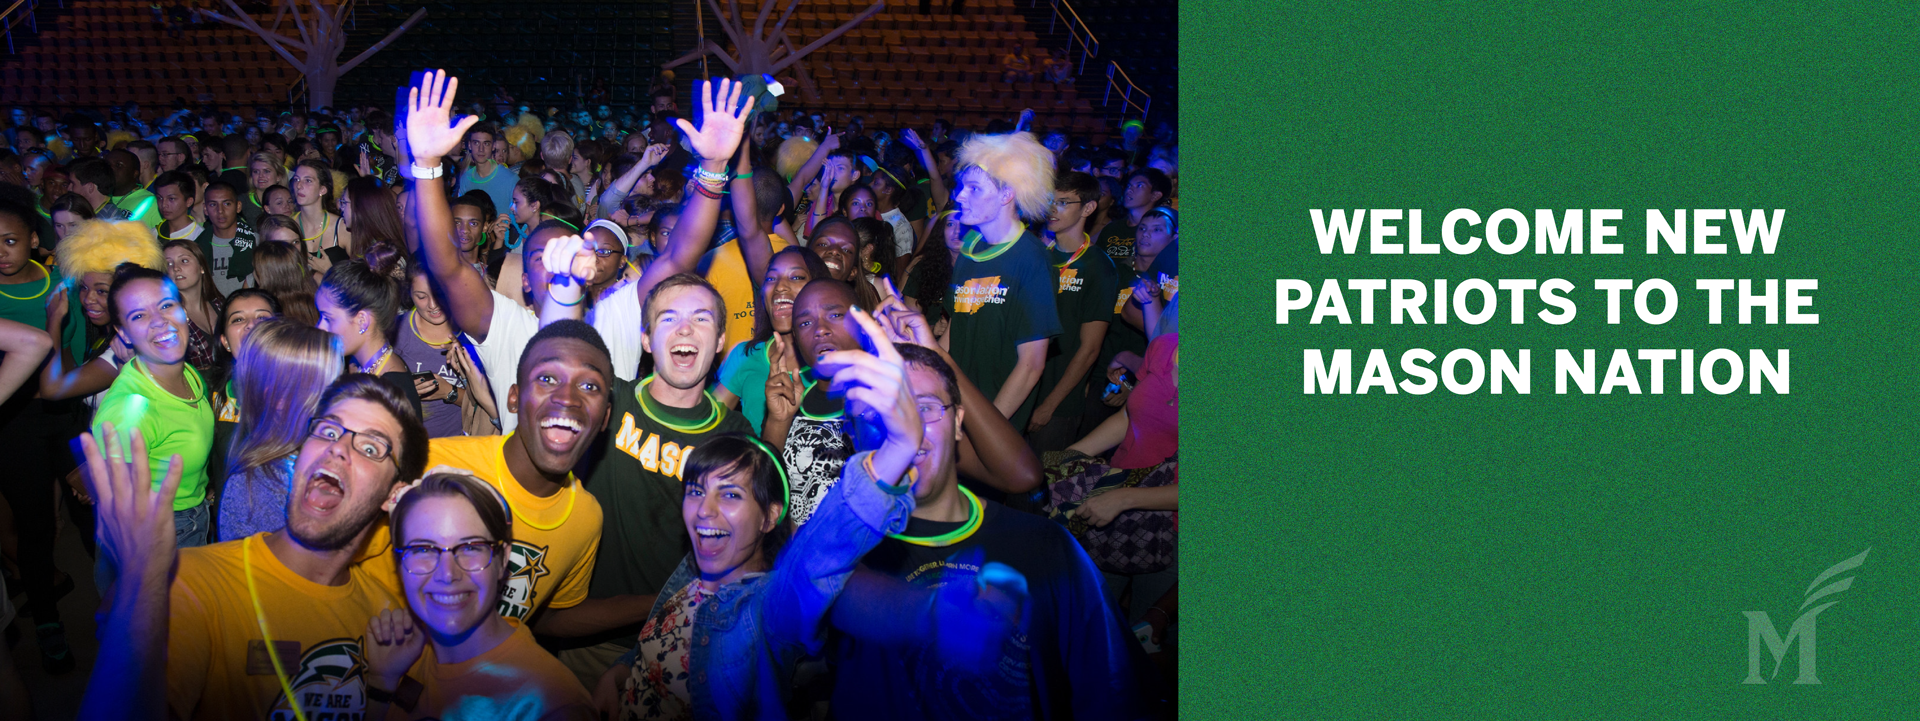 Welcome to the Mason Nation new Patriots!